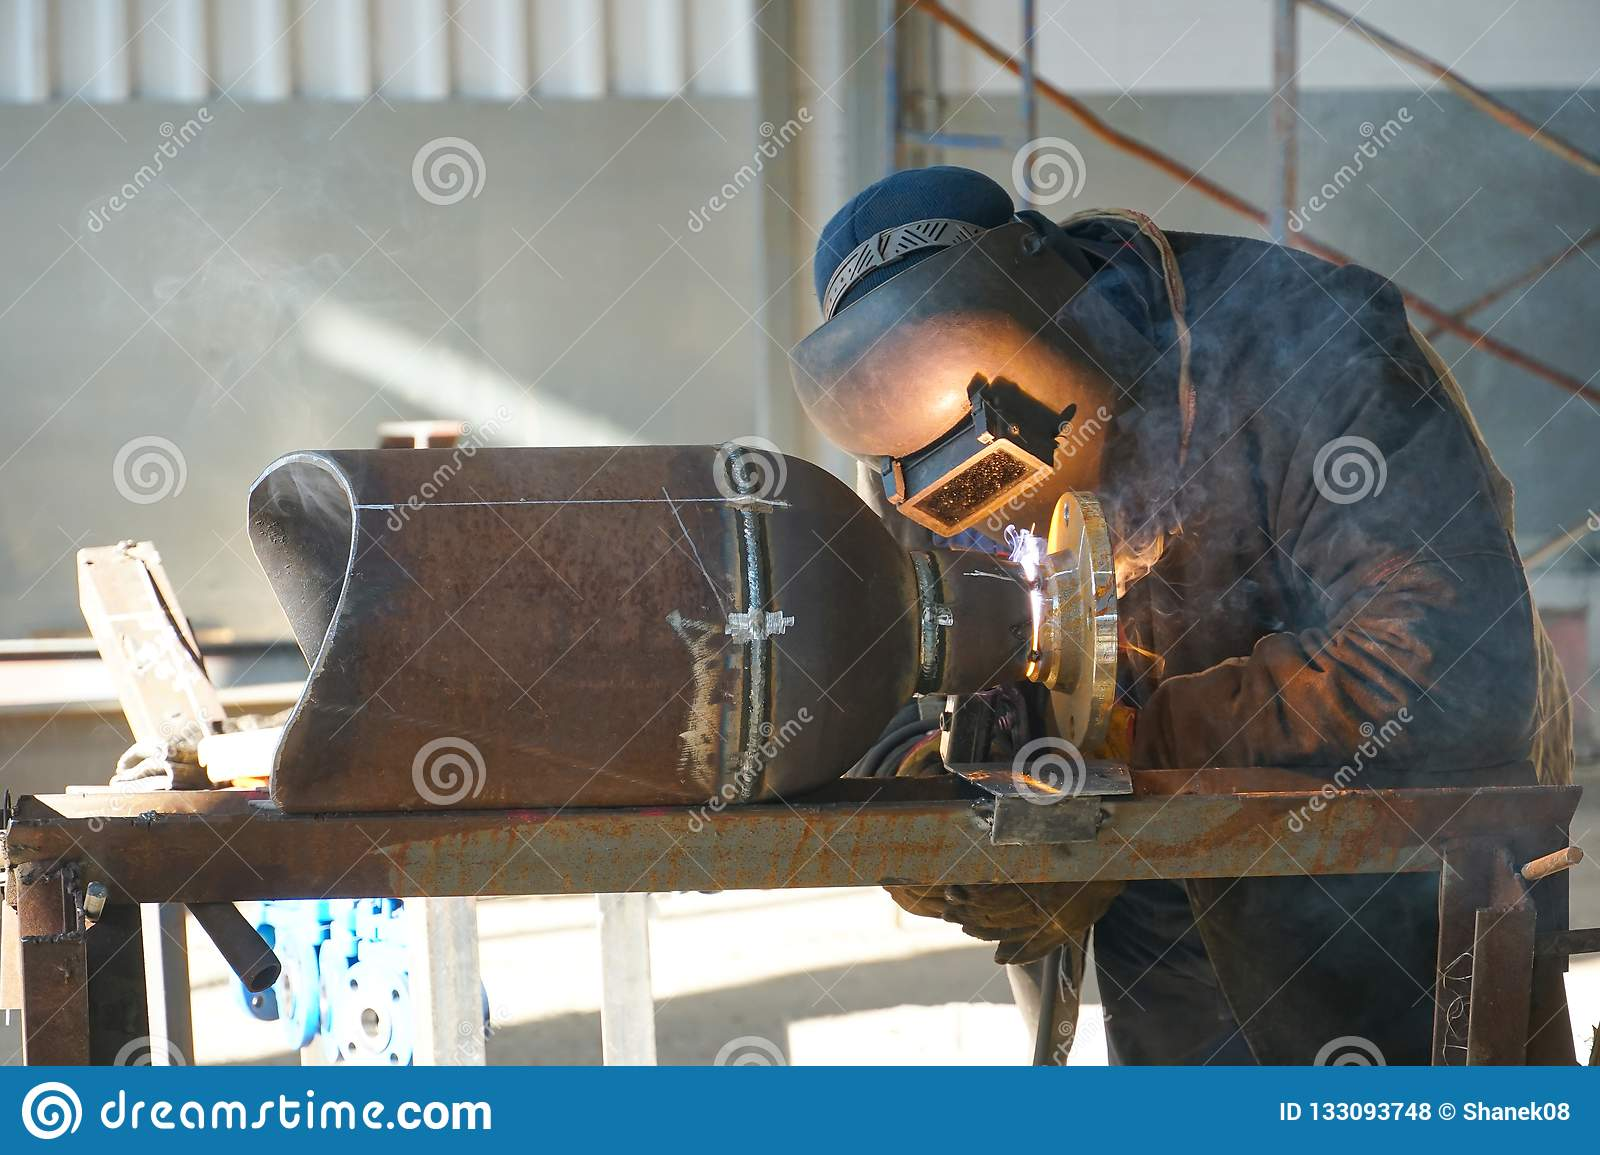 Manual electric arc welding of the junction Du 100 and flange